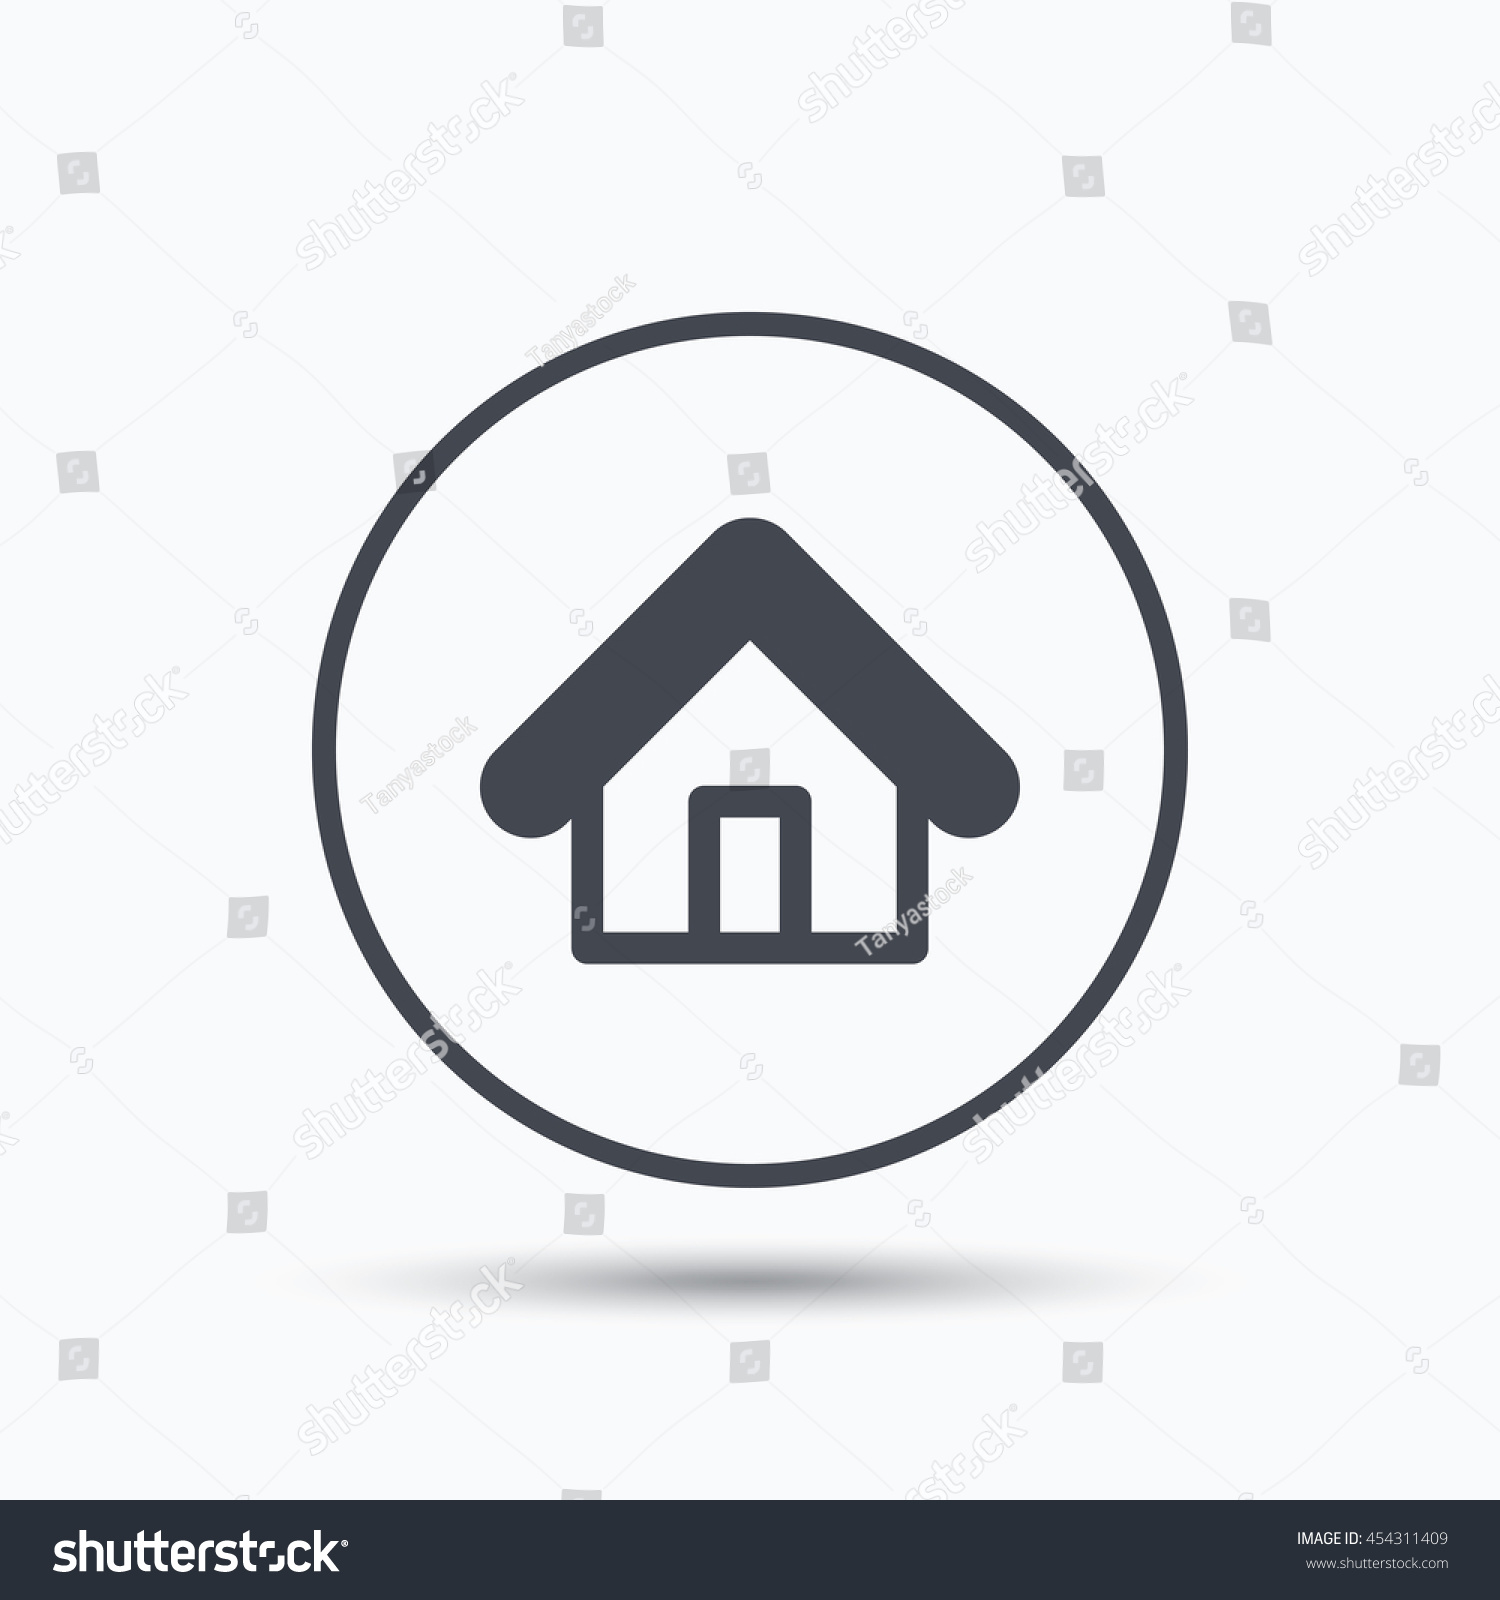 Home icon house building symbol real stock vector 454311409 home icon house building symbol real estate construction circle button with flat web biocorpaavc Image collections